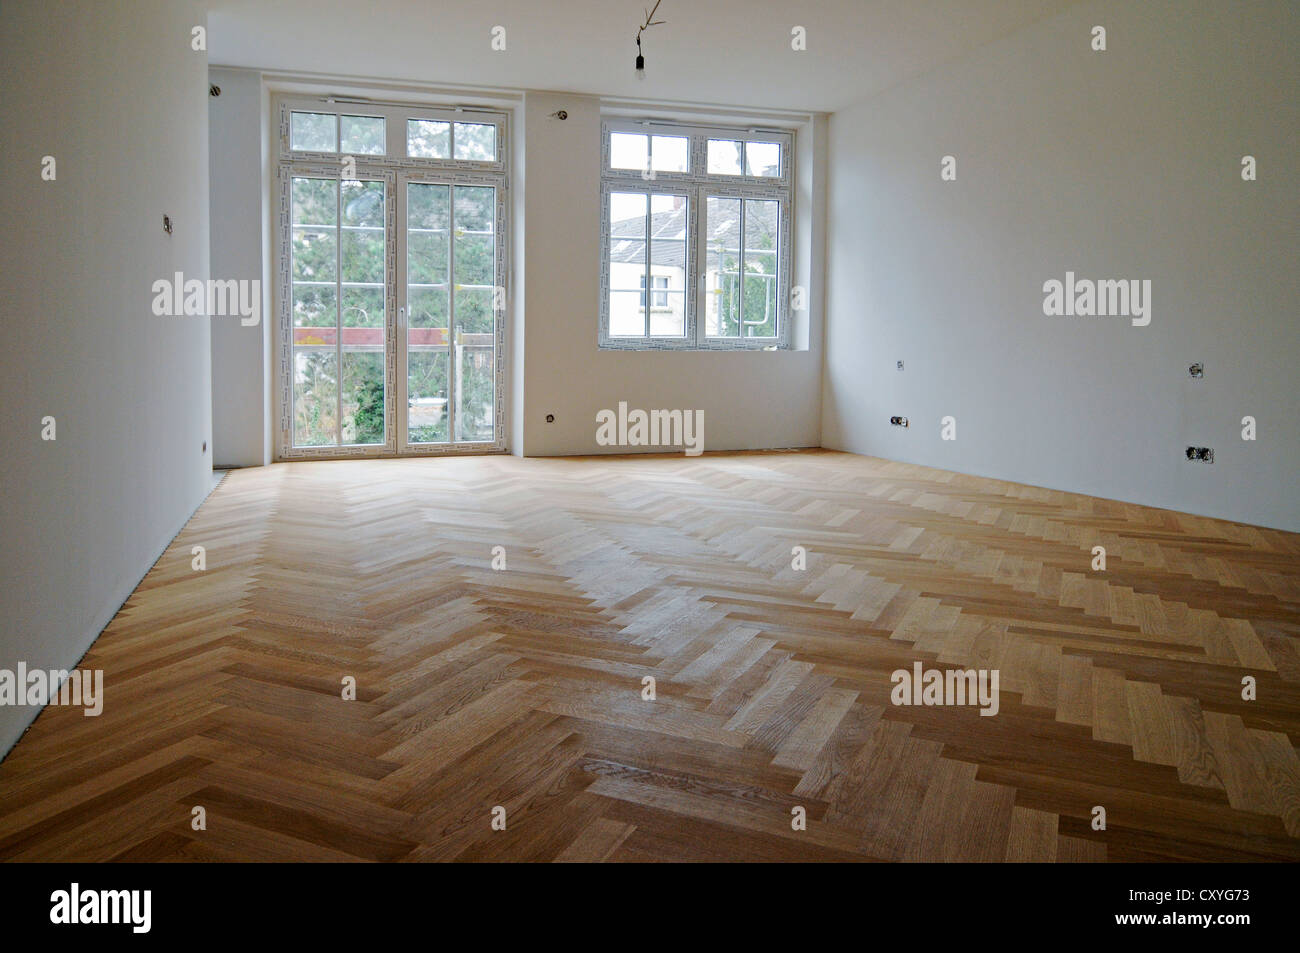 Newly laid parquet flooring, wooden floor, building renovation - Stock Image